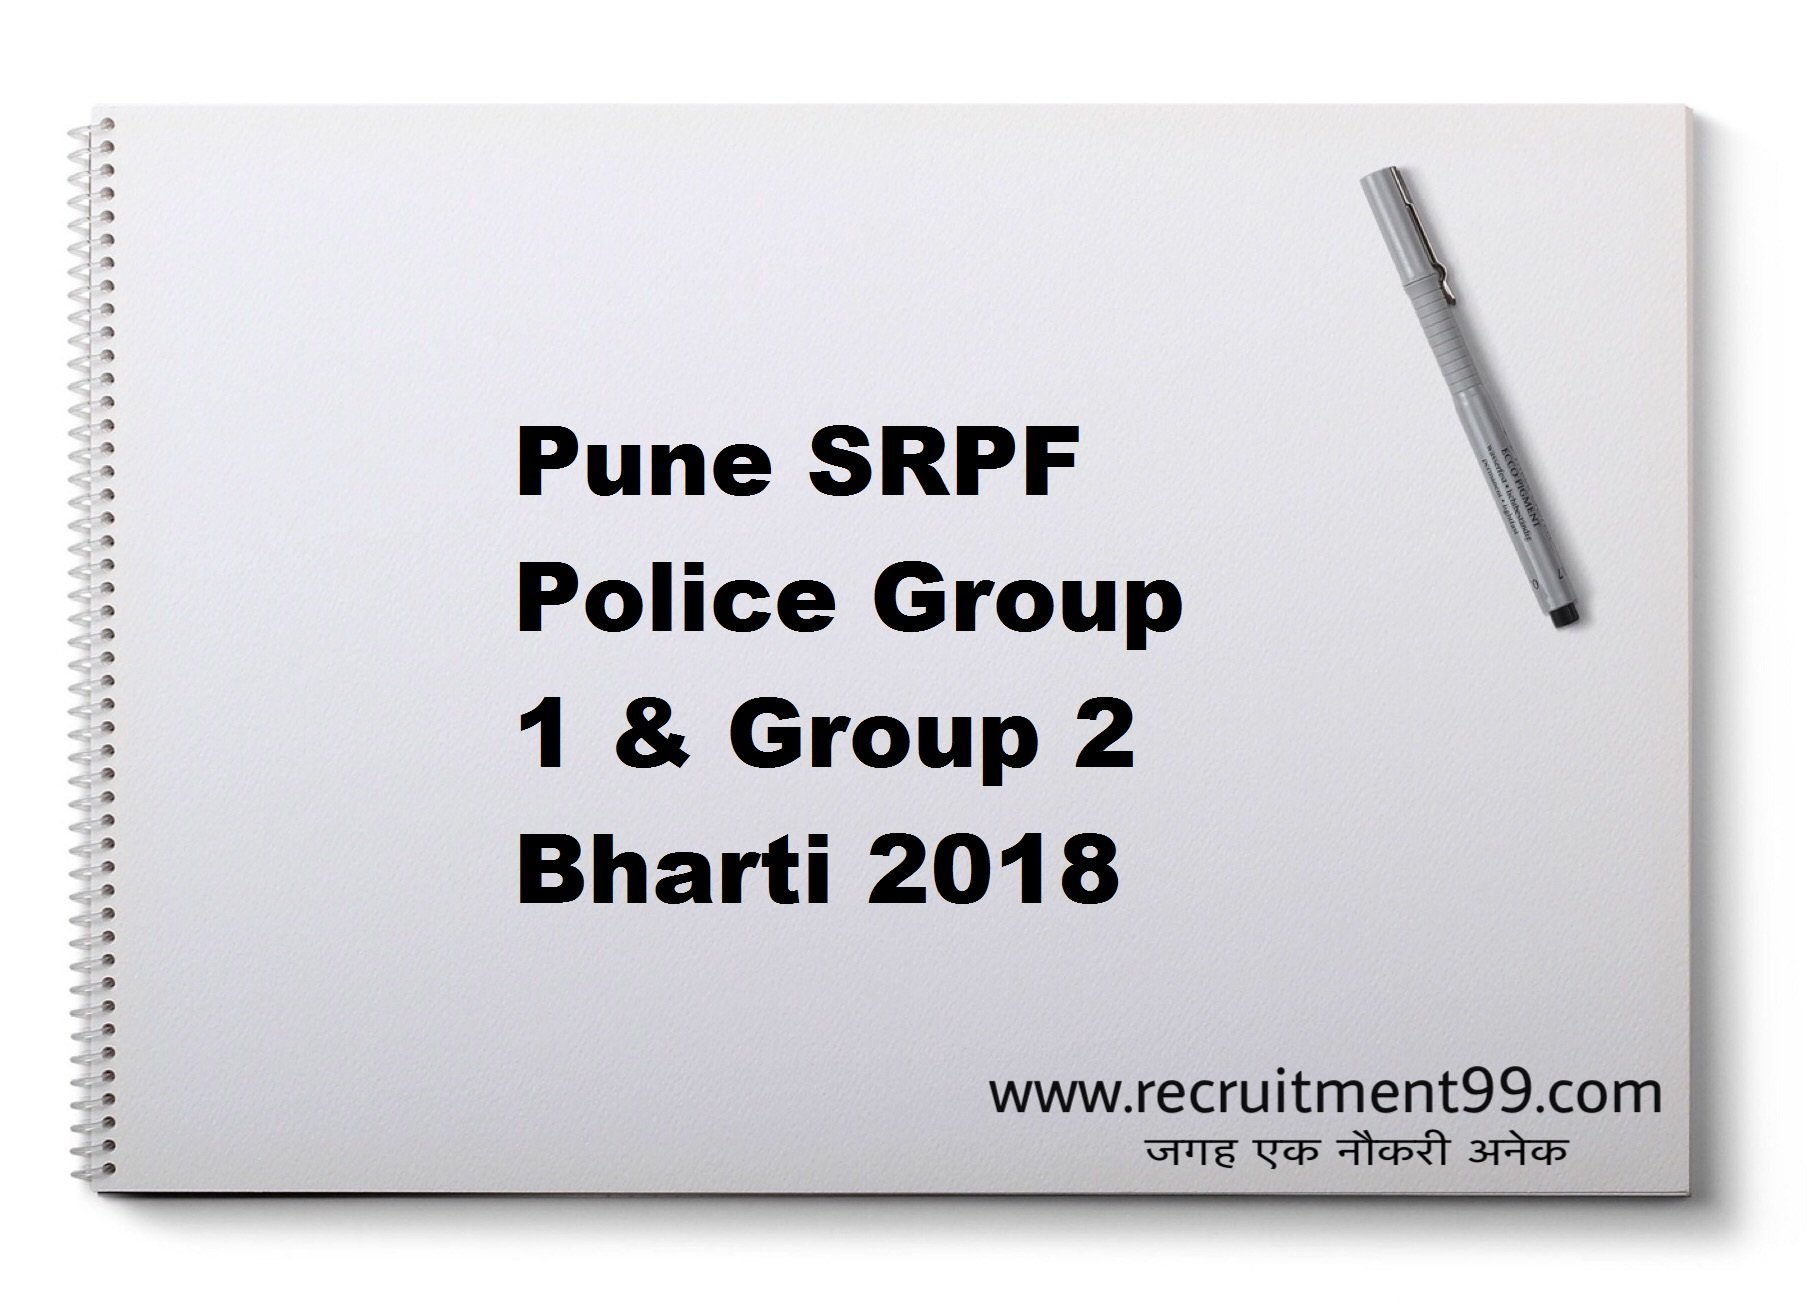 Pune SRPF Police Group 1 & Group 2 Bharti Admit Card Result 2018